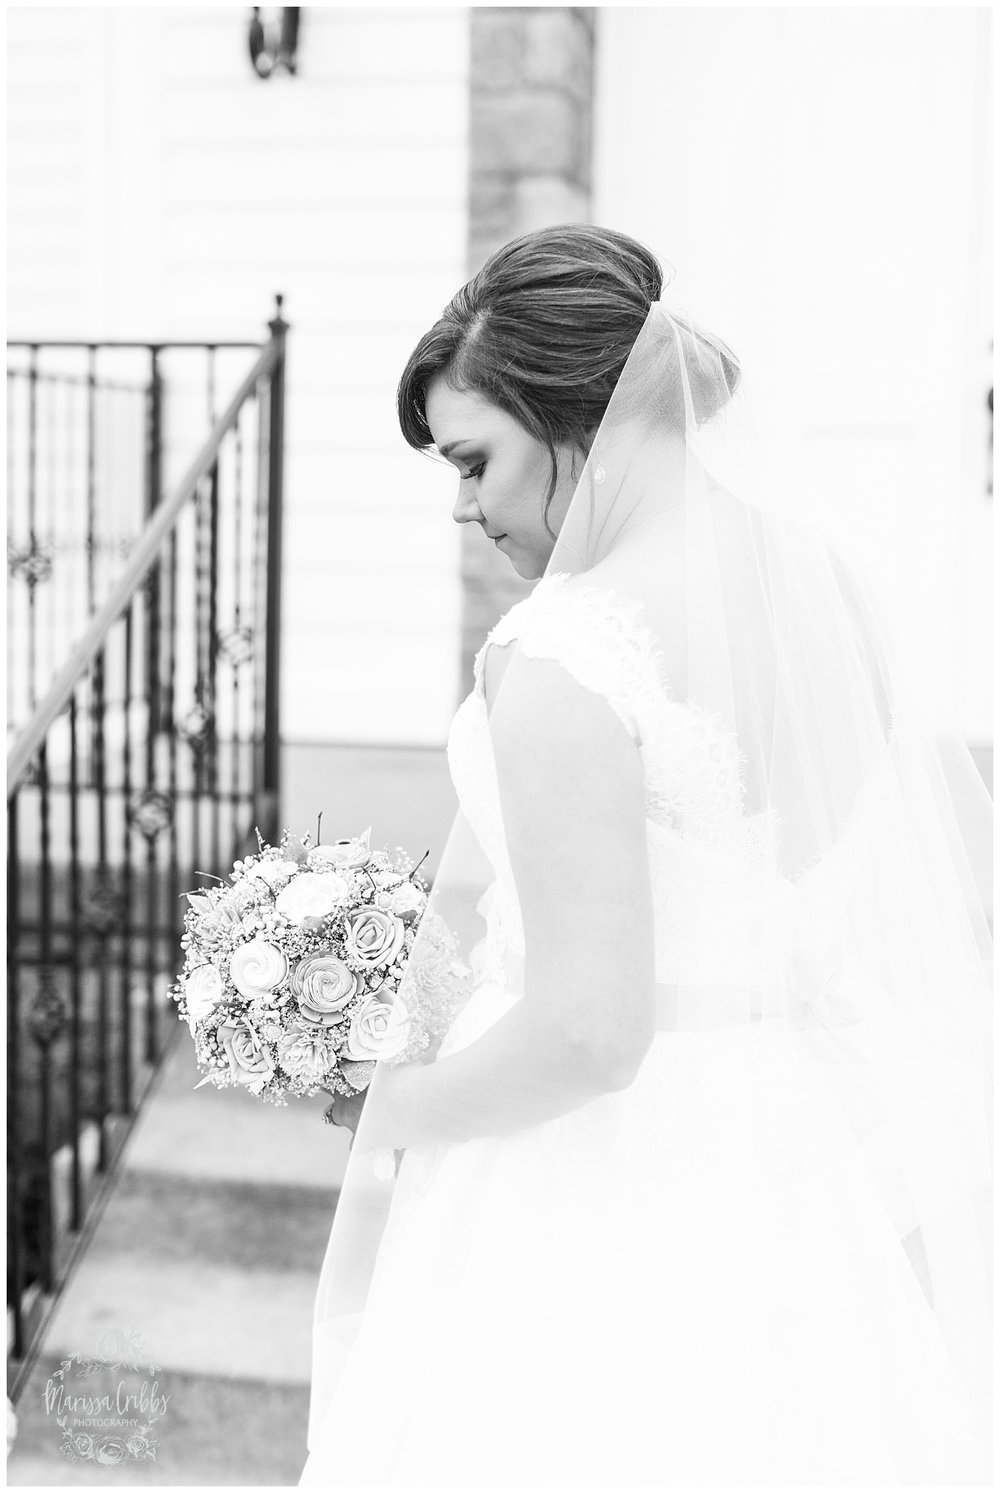 Hawthorne House Wedding | Katie & David | KC Photographers | Marissa Cribbs Photography | KC Wedding Photographers_0728.jpg